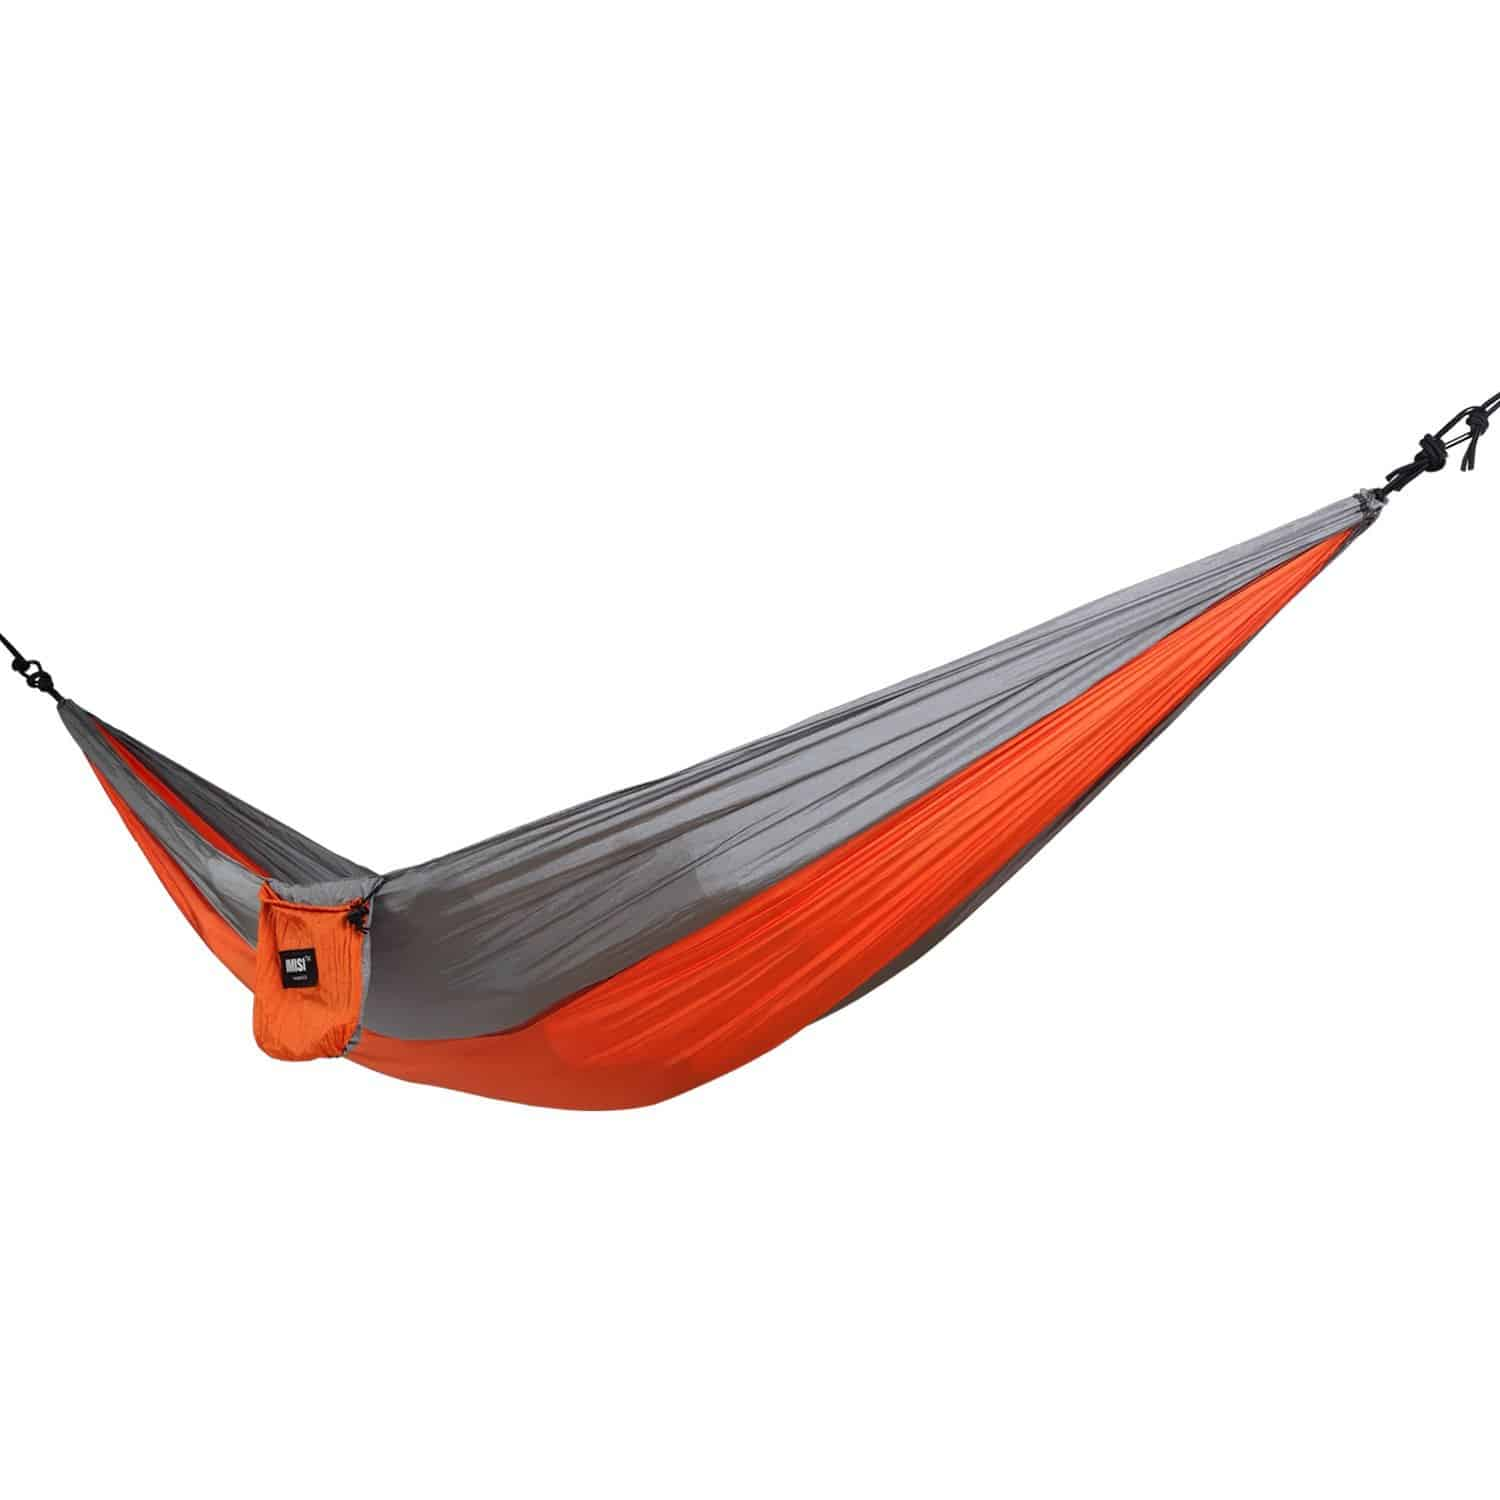 Awe Inspiring Best Camping Hammocks Uk Buying Guide Reviews Geared 4 Download Free Architecture Designs Itiscsunscenecom